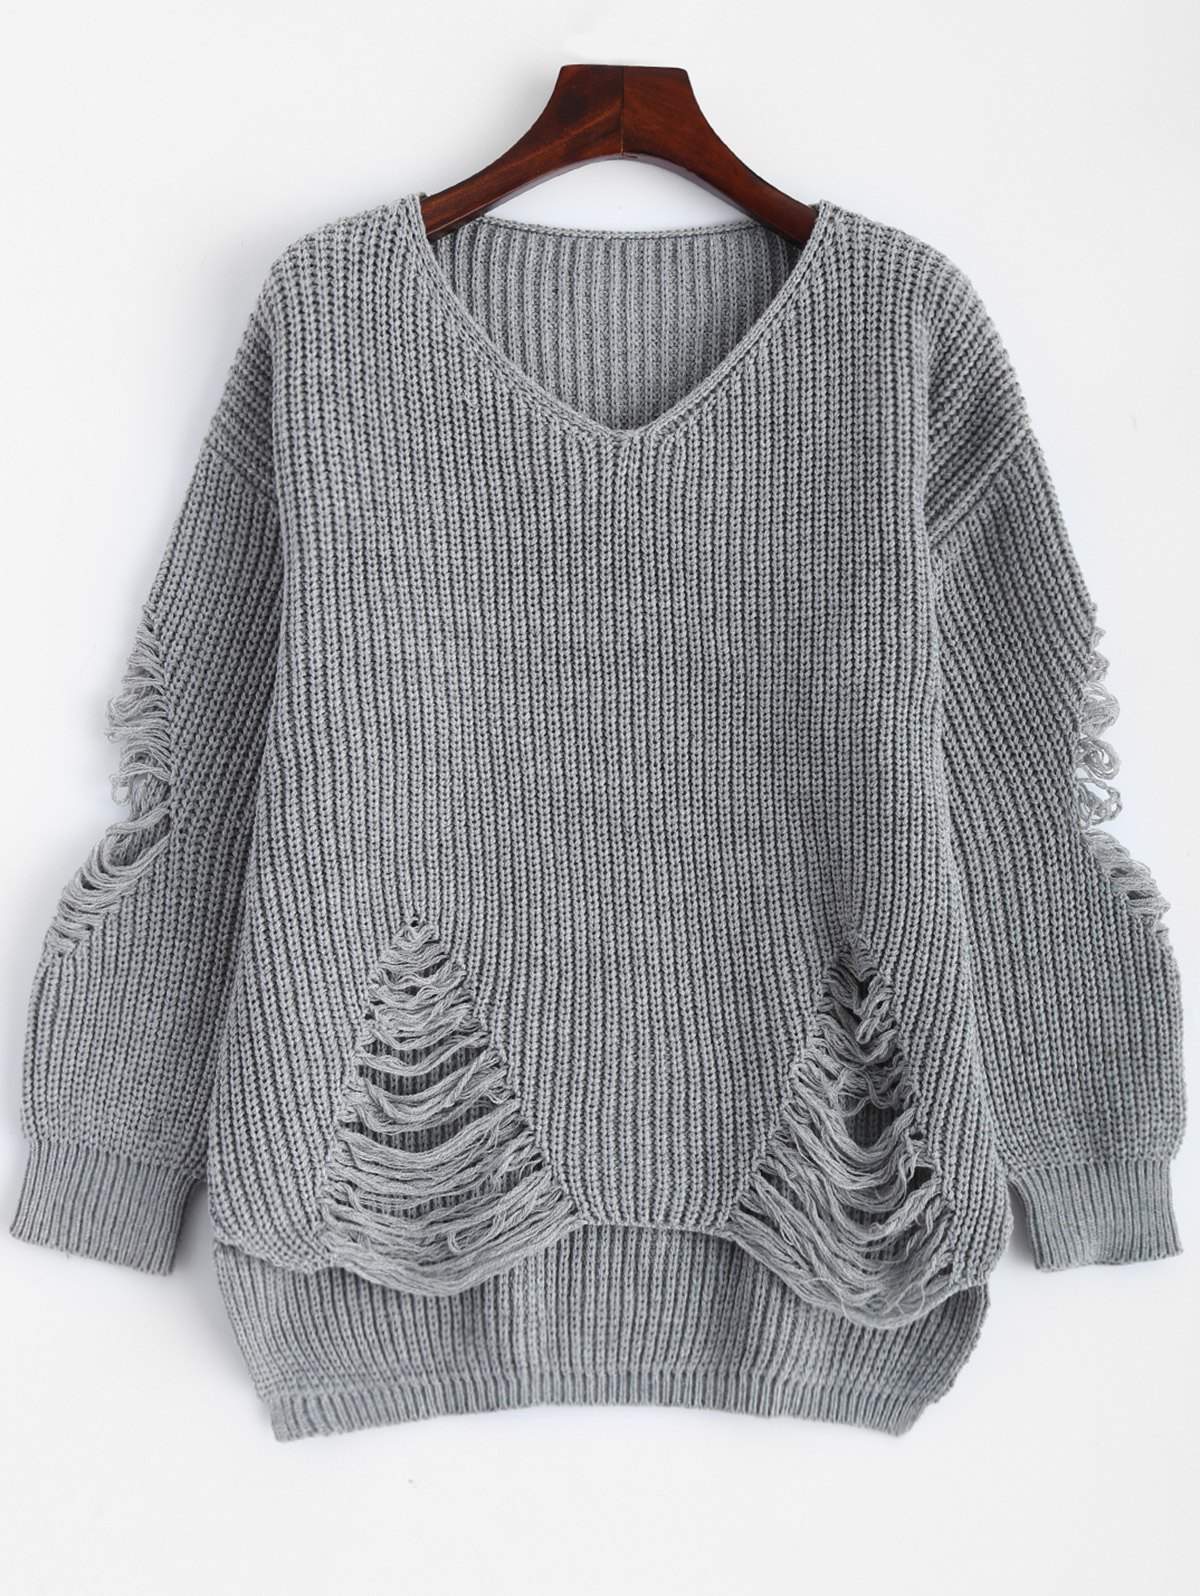 Pullover Ripped V Neck Sweater - DEEP GRAY M